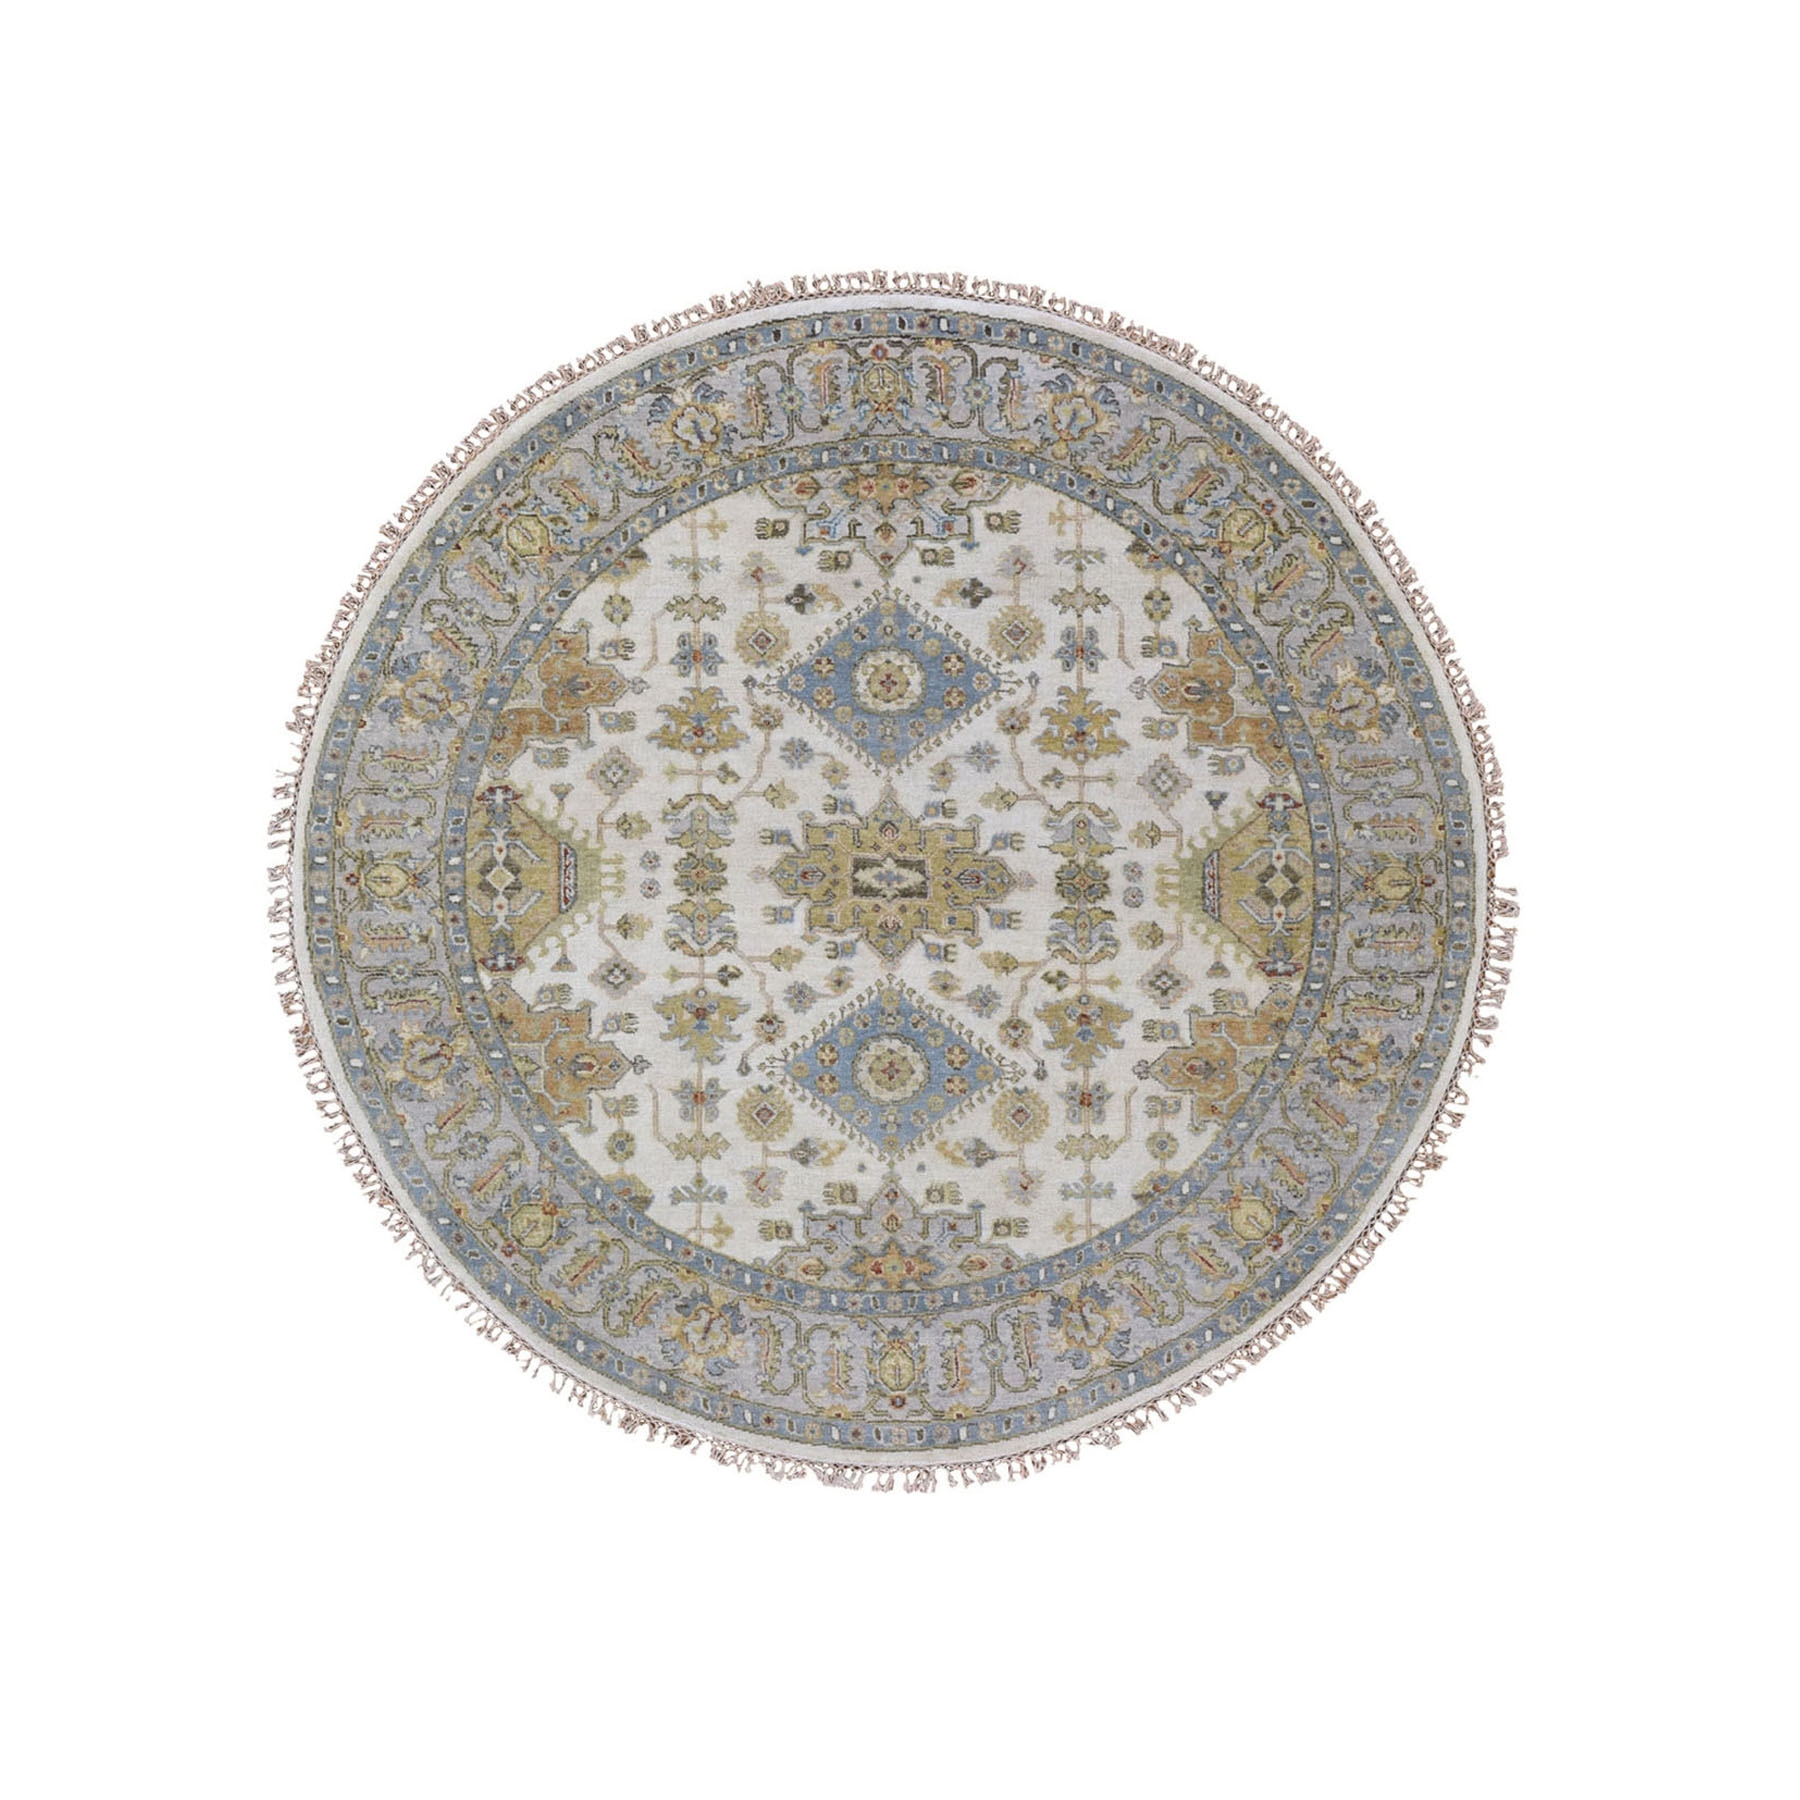 "4'1""x4'1"" Round Ivory Karajeh Design Pure Wool Hand Knotted Oriental Rug"